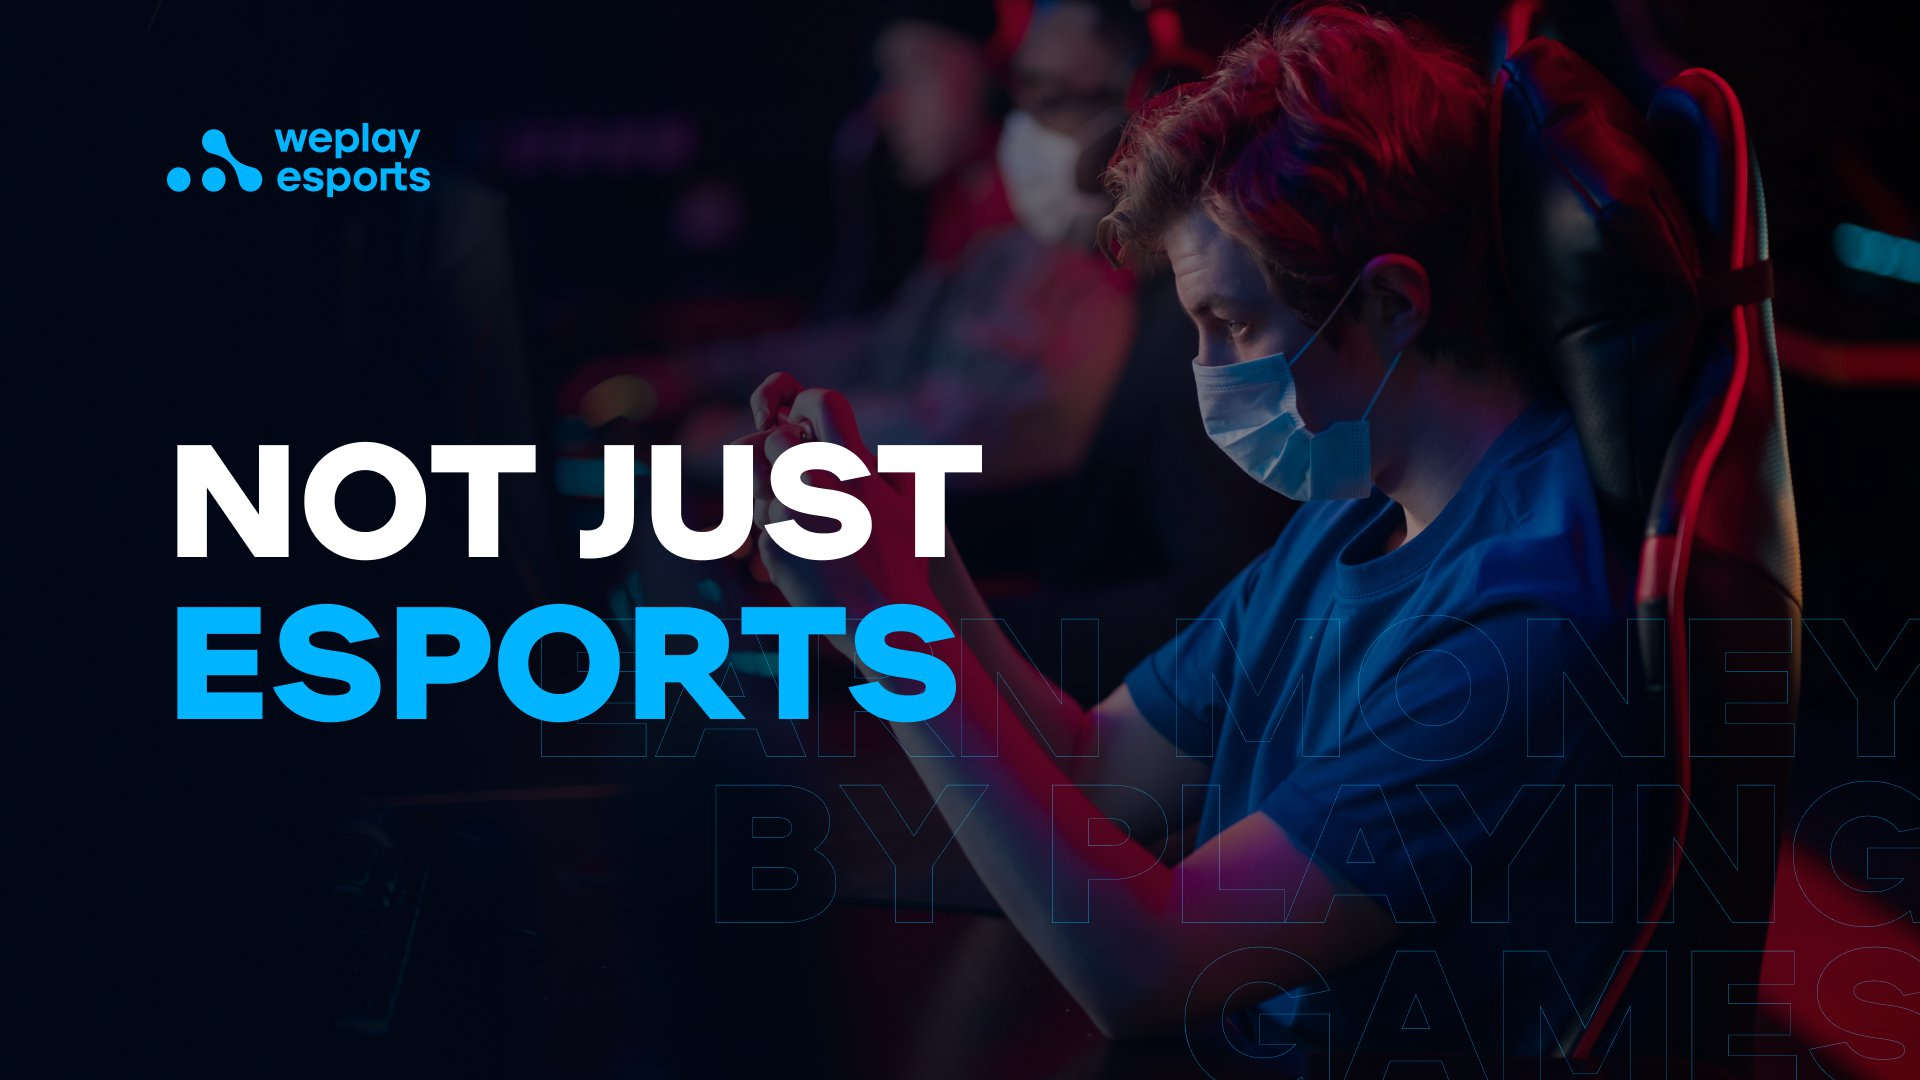 Not Just Esports